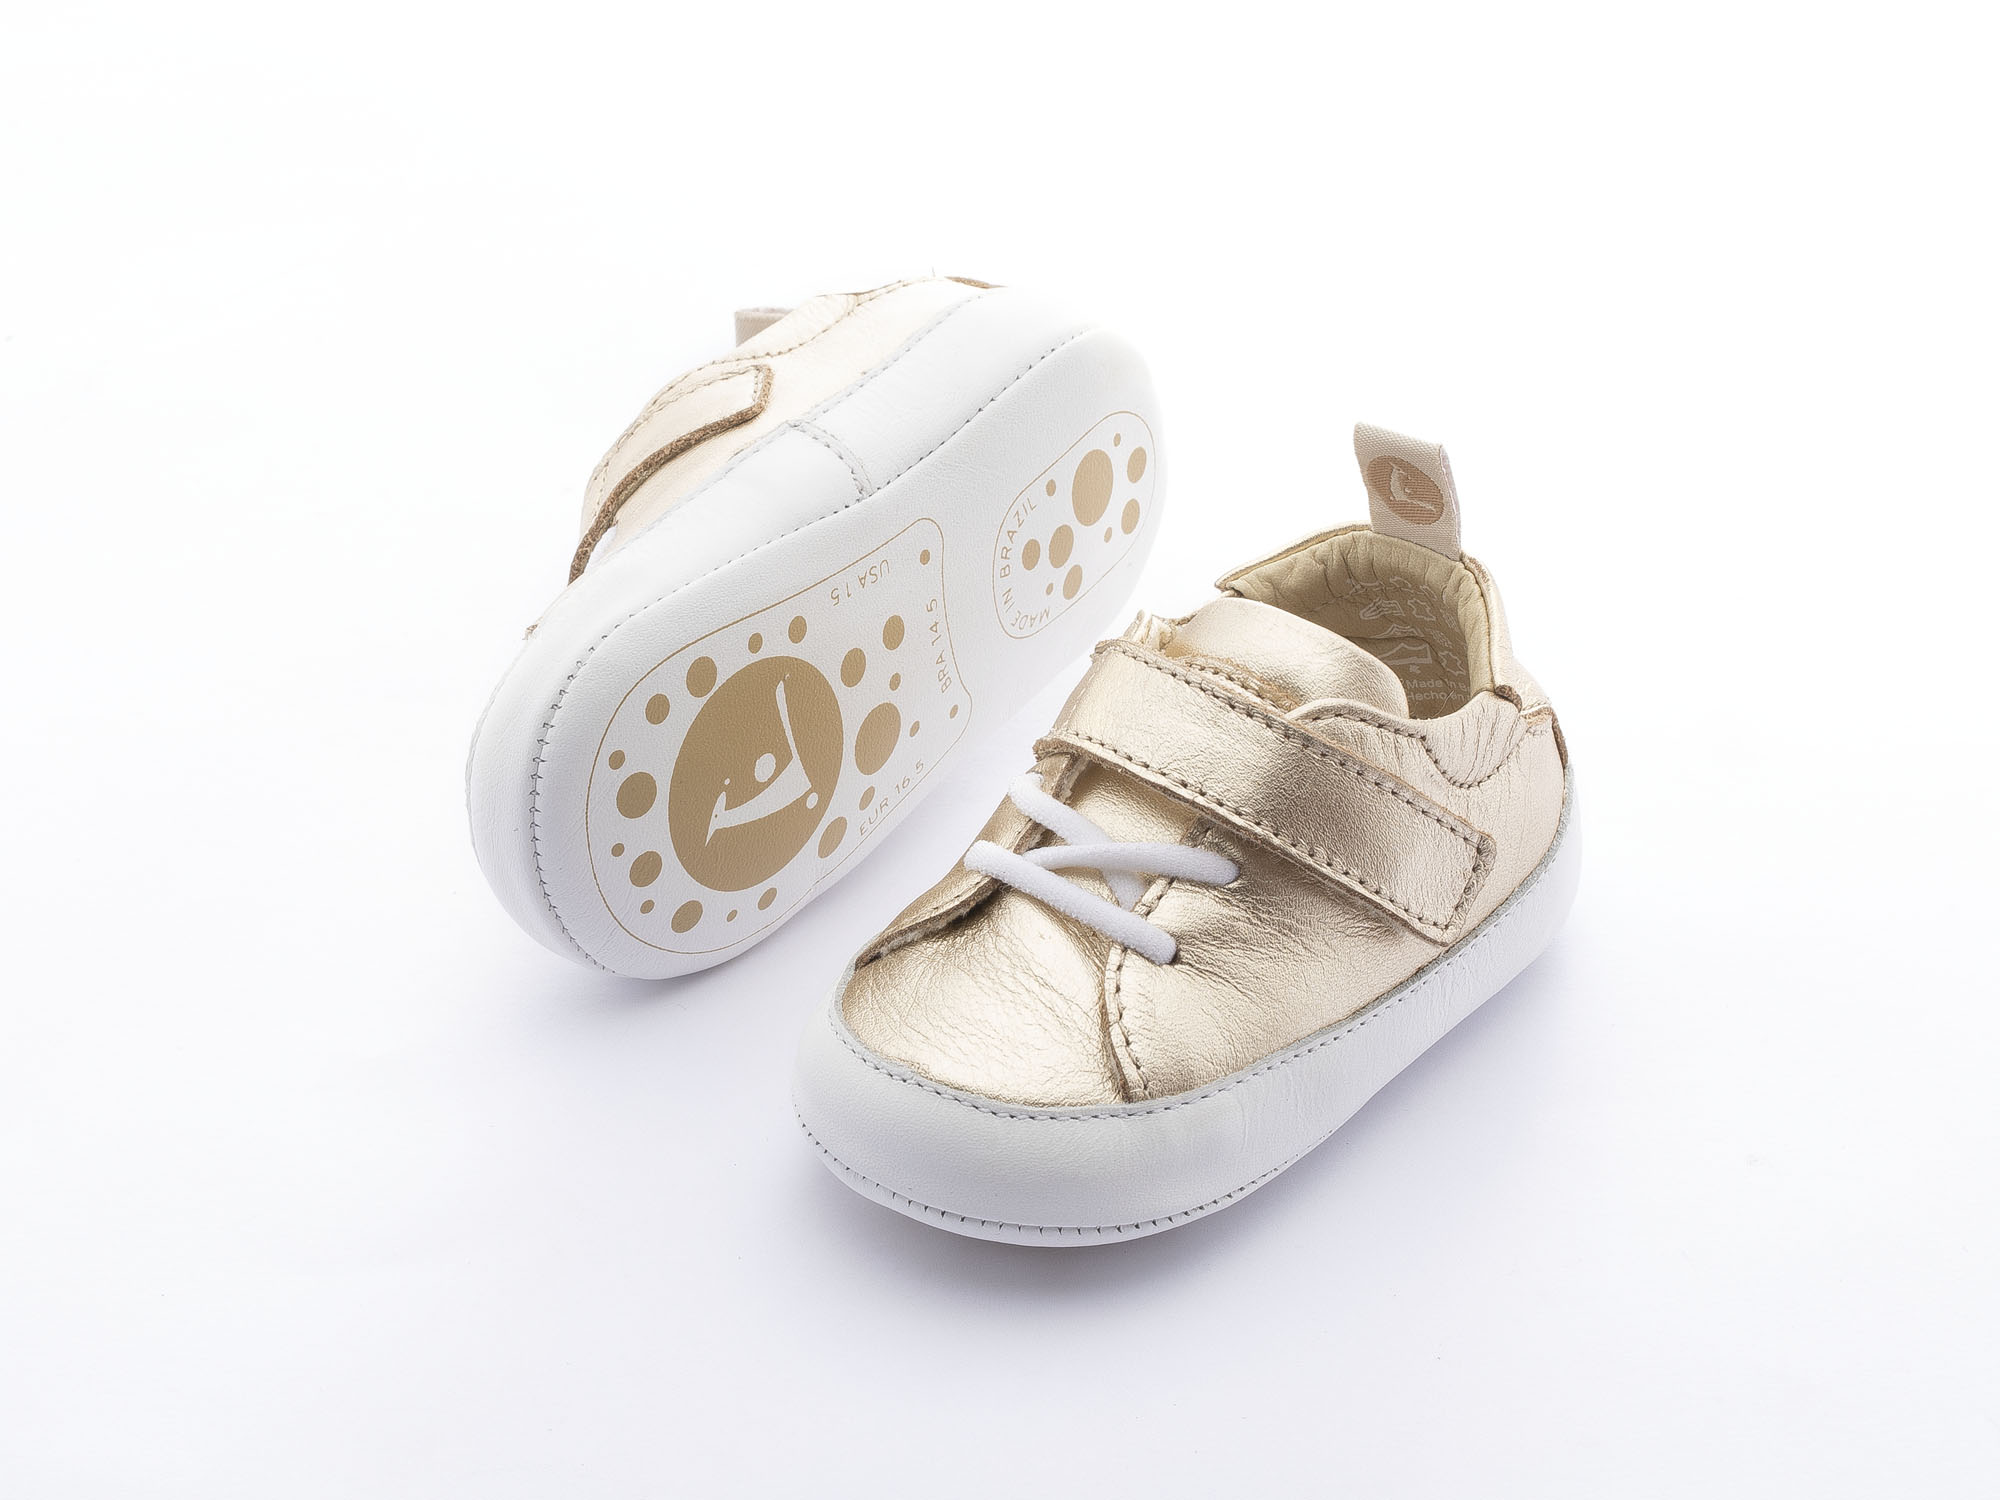 Sneaker Casual Light Champagne  Baby 0 à 2 anos - 2